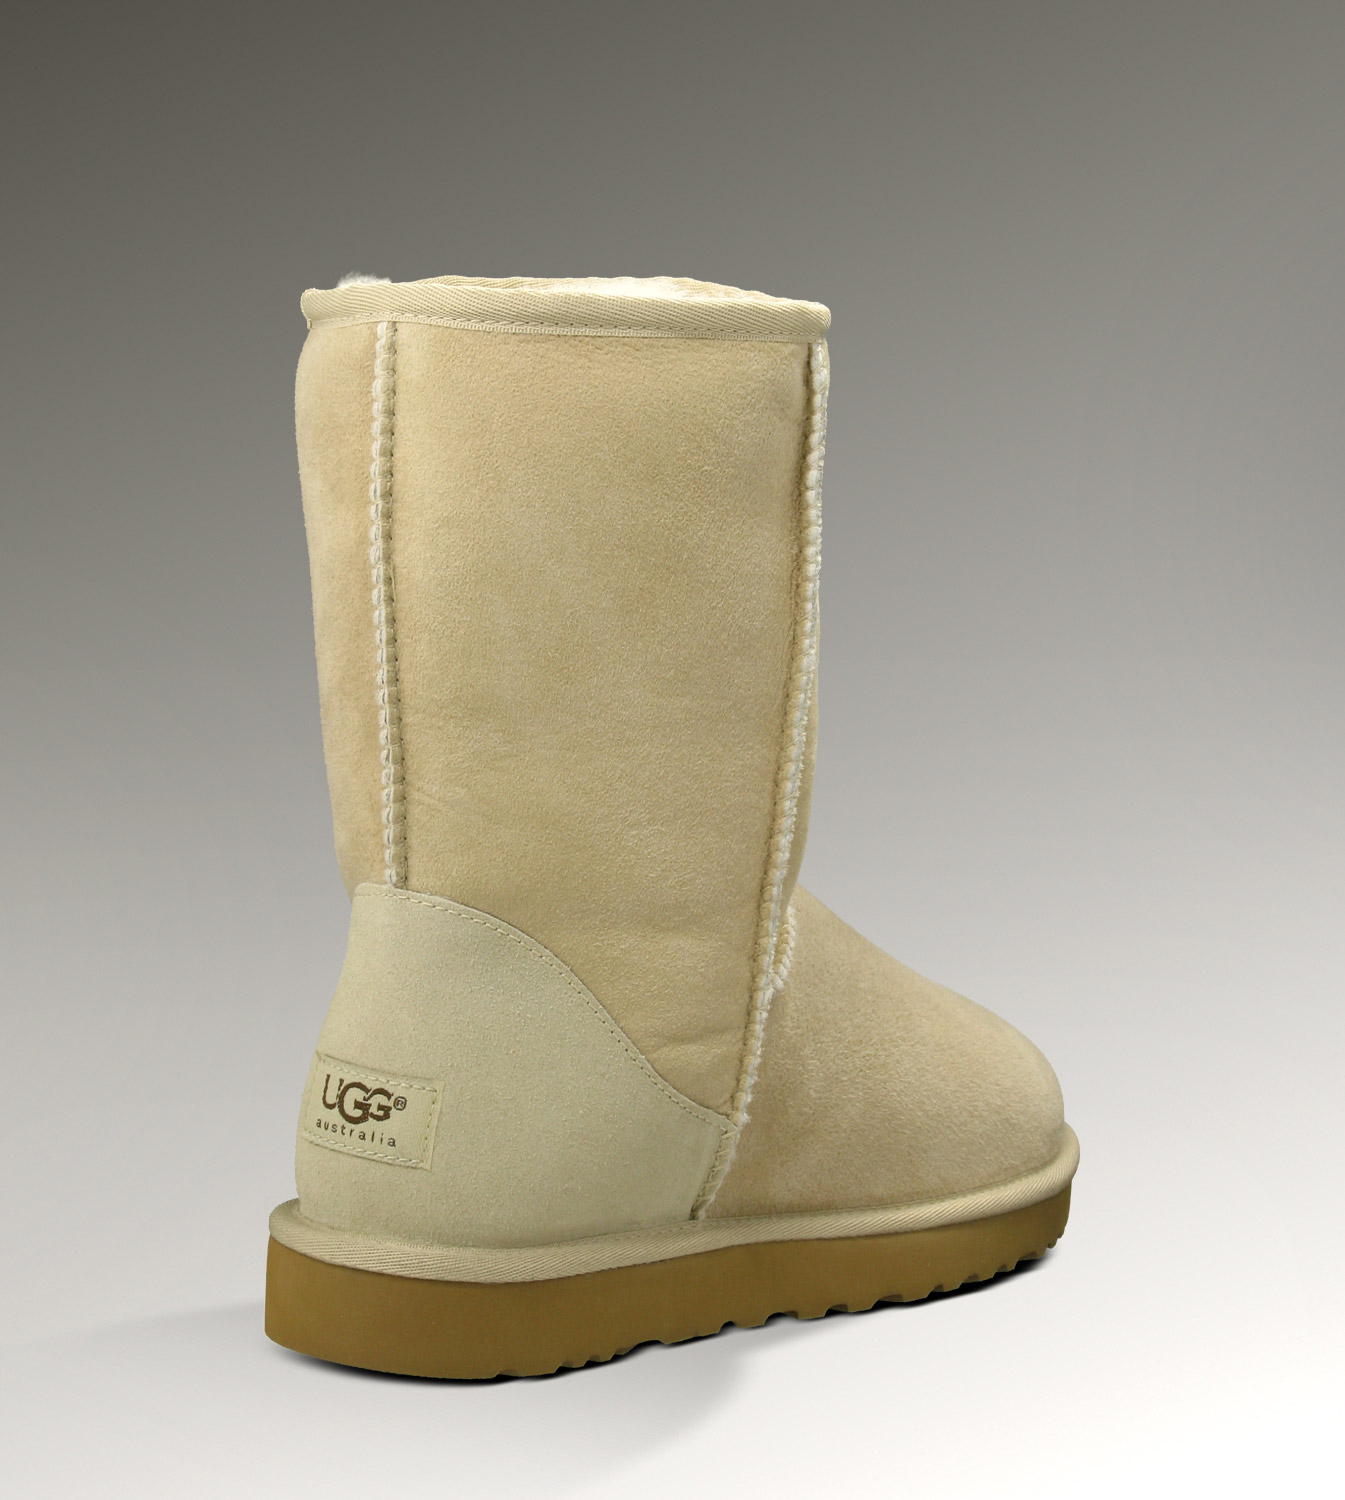 UGG Classic Short 5800 Sand Boots